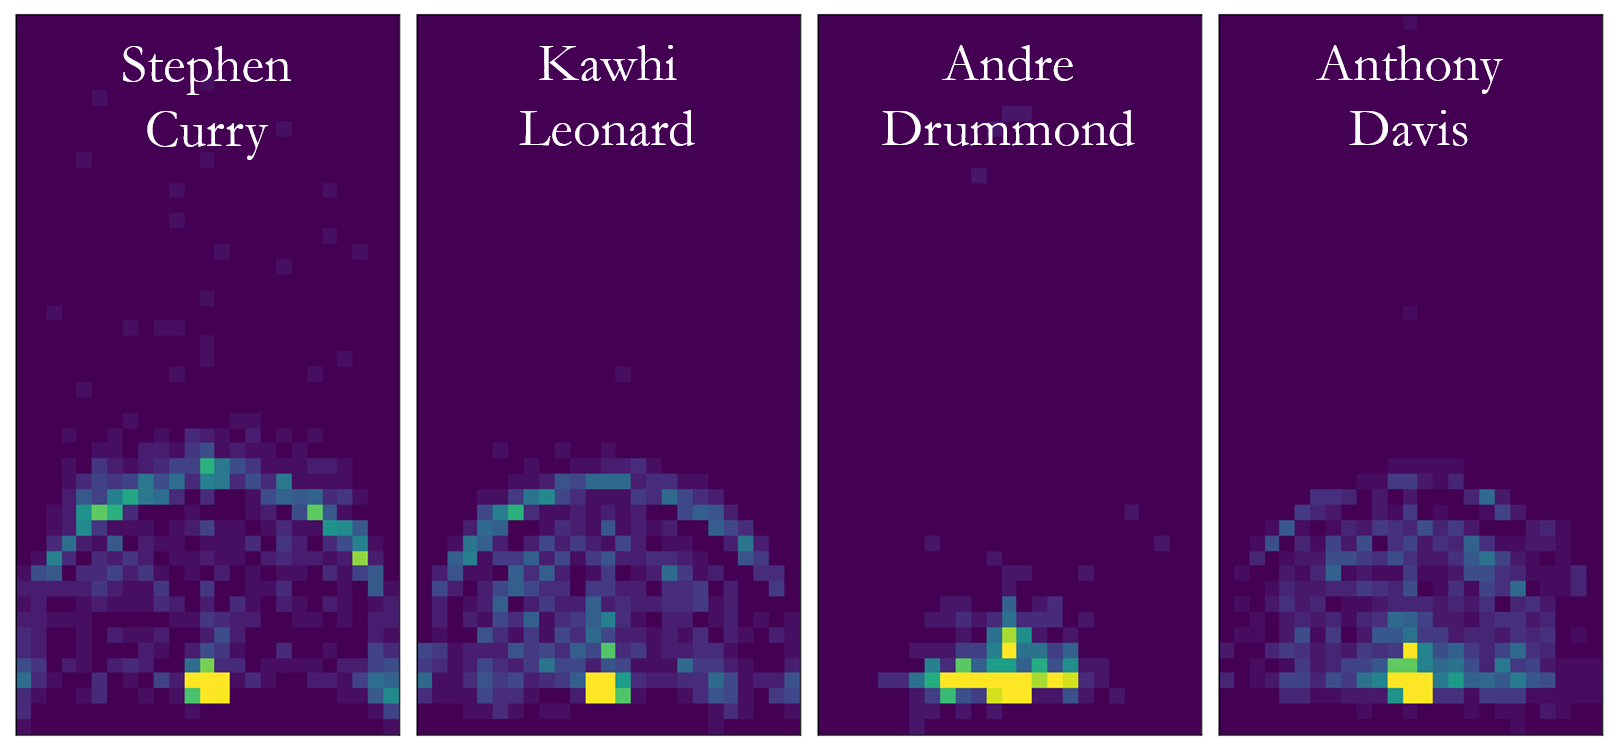 A metallurgical scientists approach to predicting NBA team success